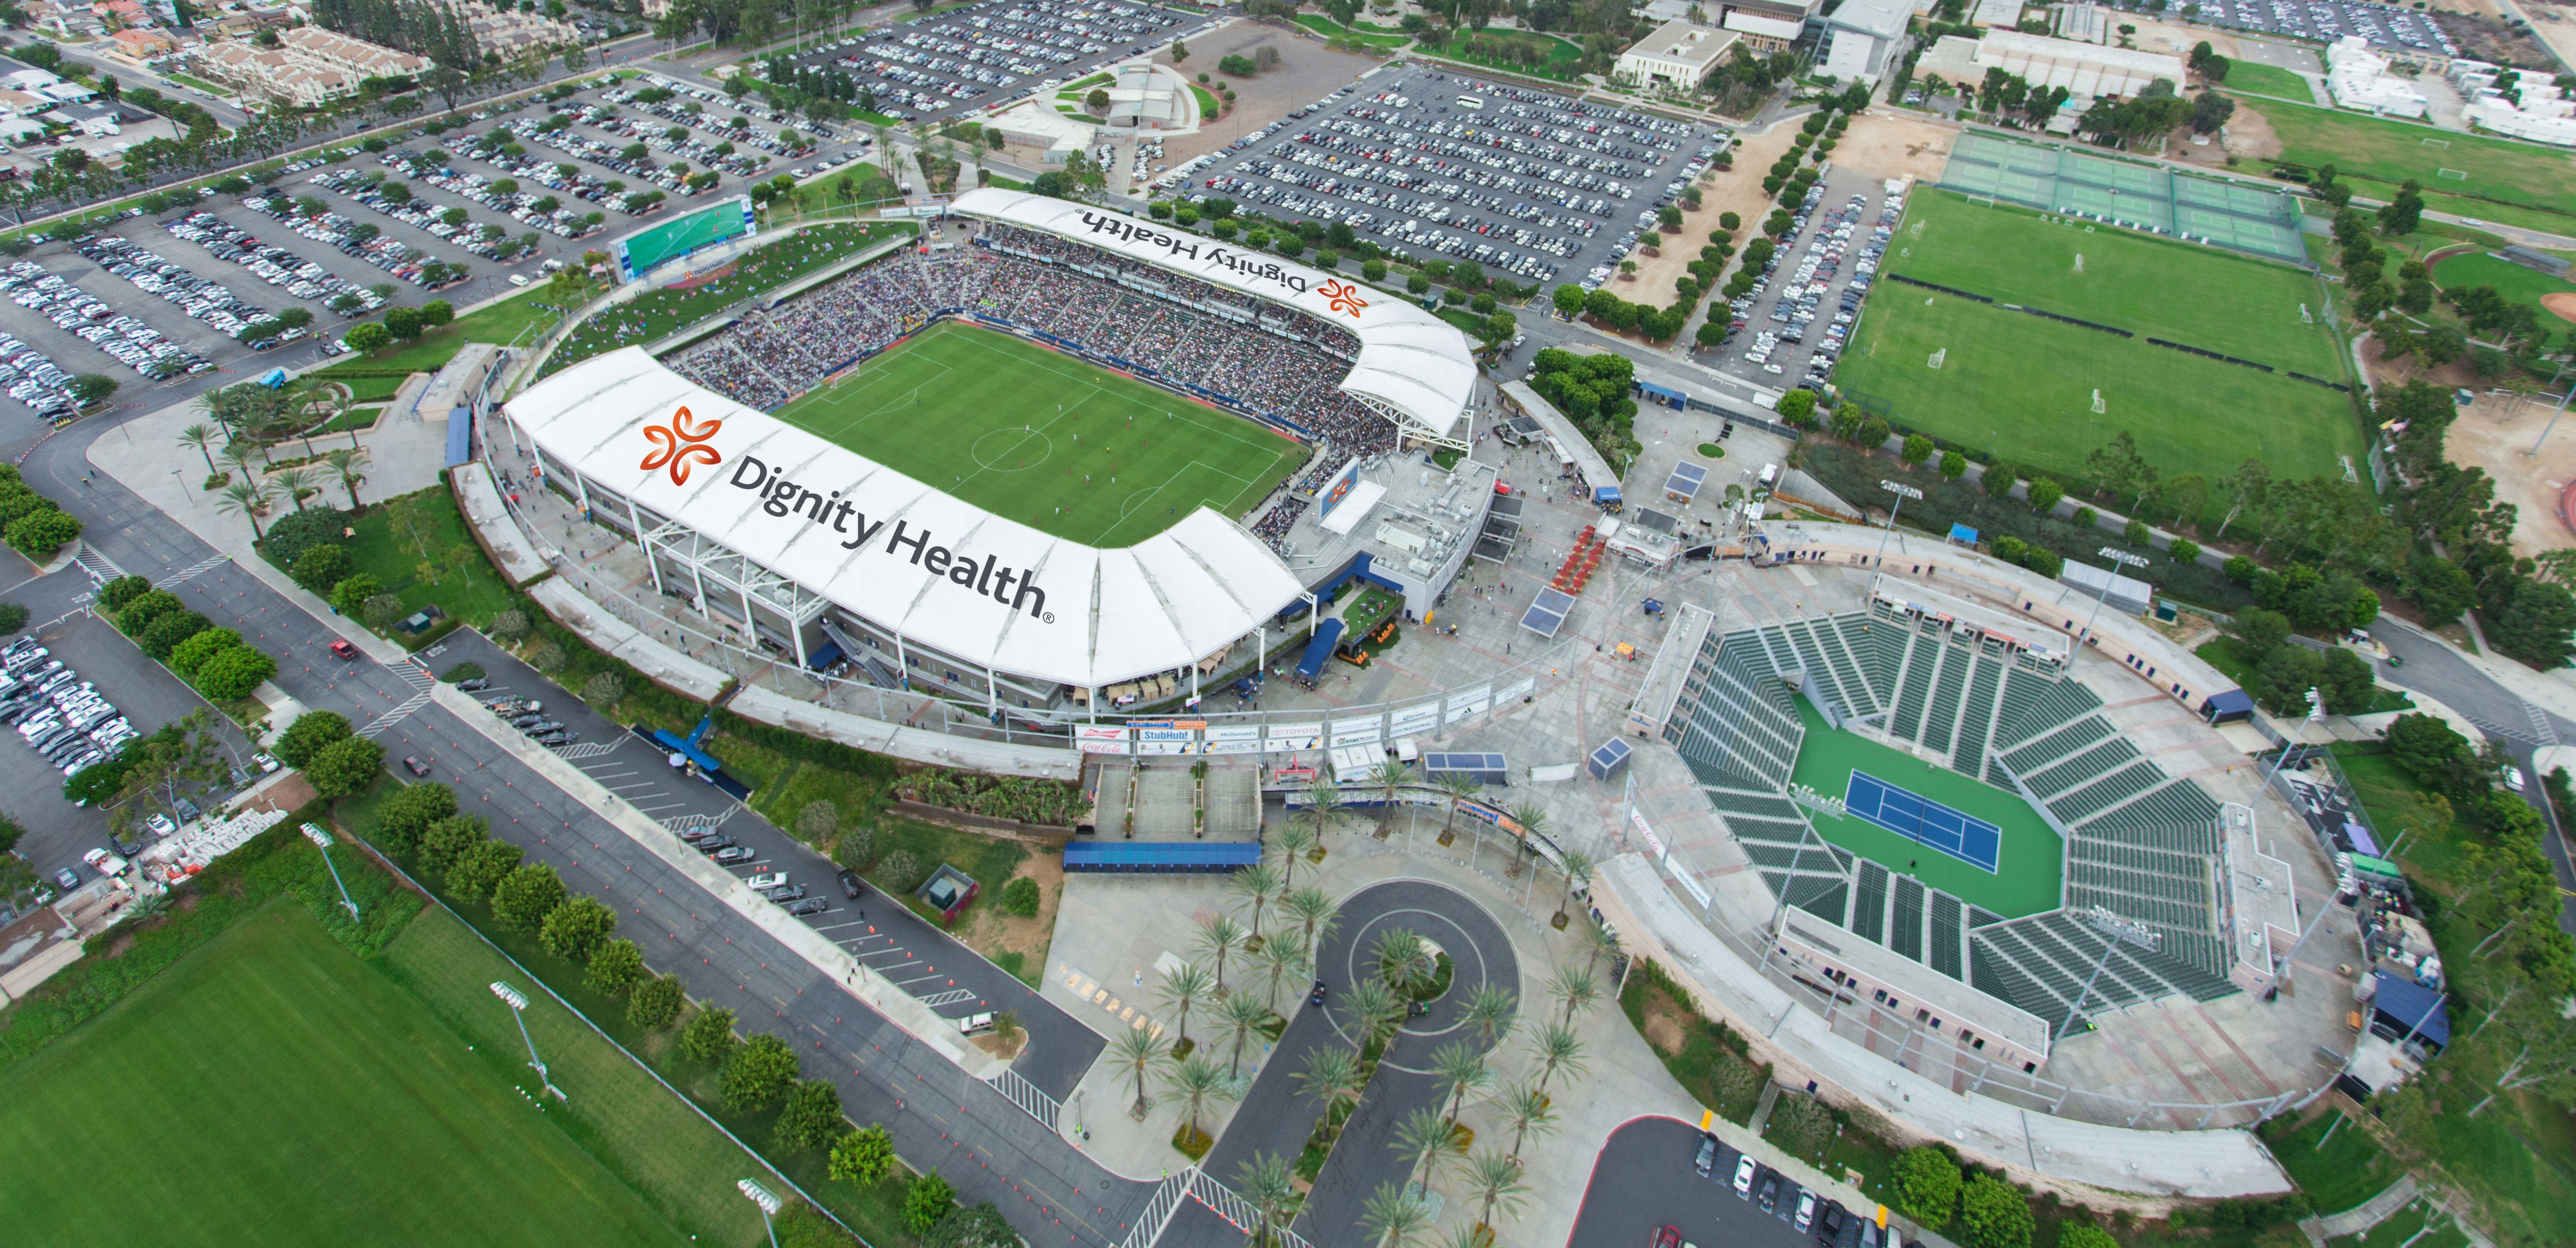 Aeg Announces New Partnership With Dignity Health Renames La Galaxy Home Stadium Dignity Health Sports Park Dignity Health Sp Sport Park Image House Stadium